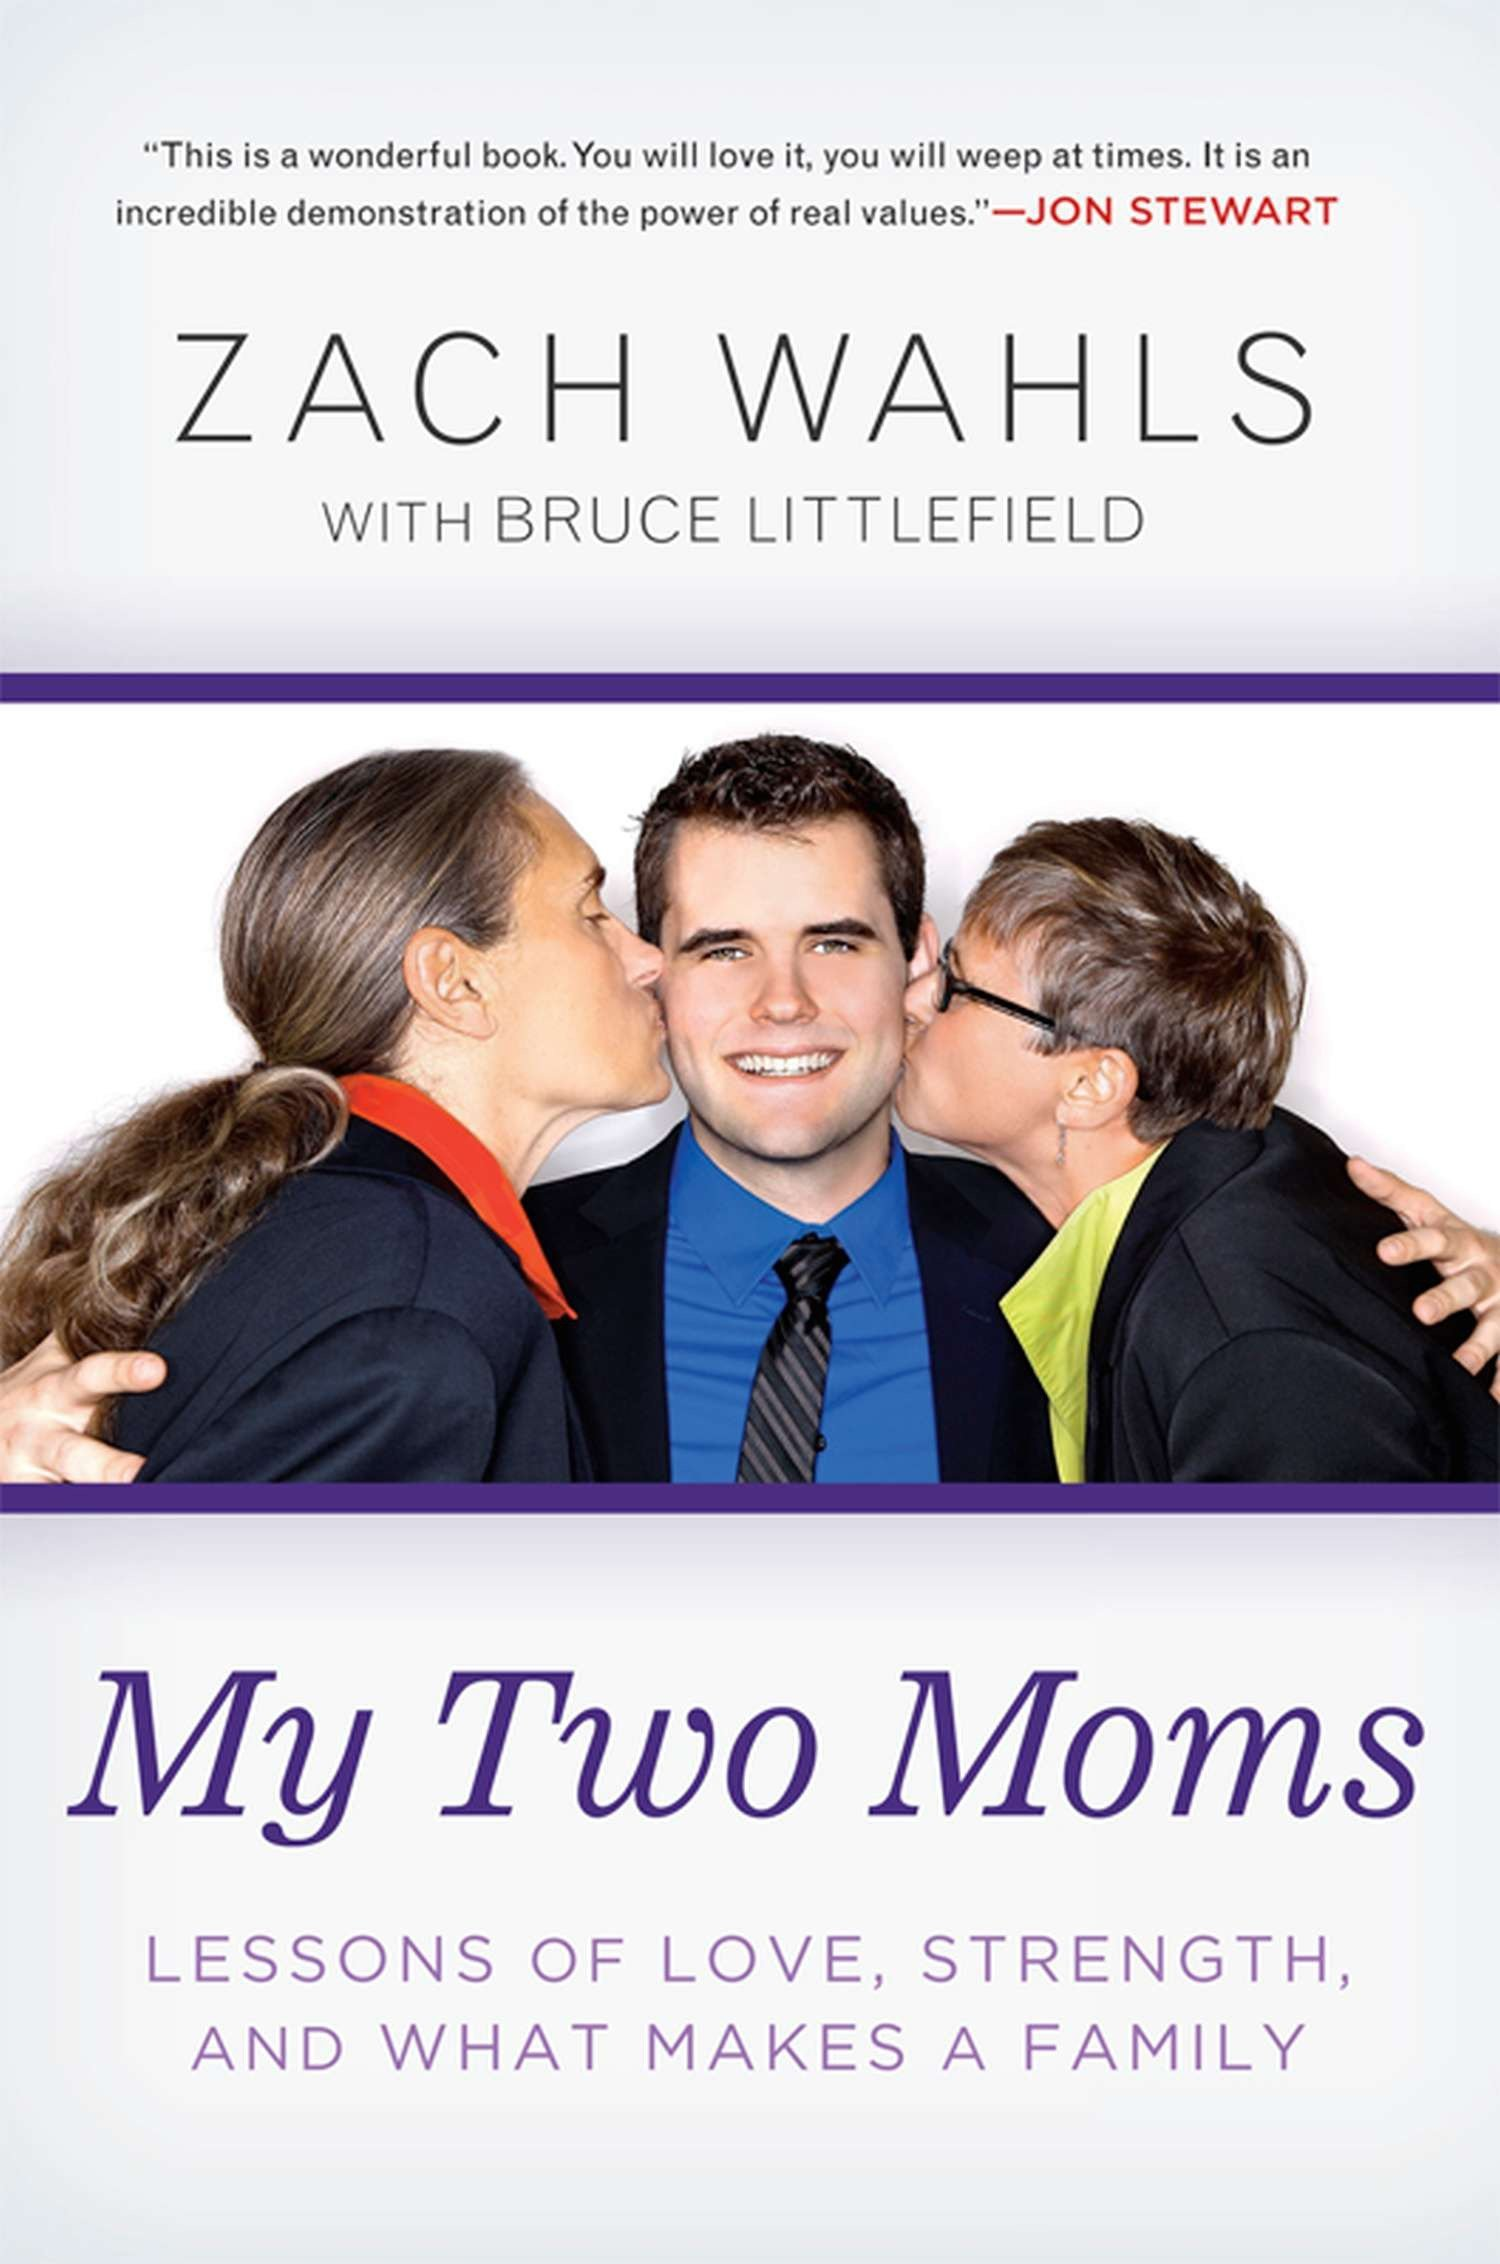 My Two Moms: Lessons of Love, Strength, and What Makes a Family ebook